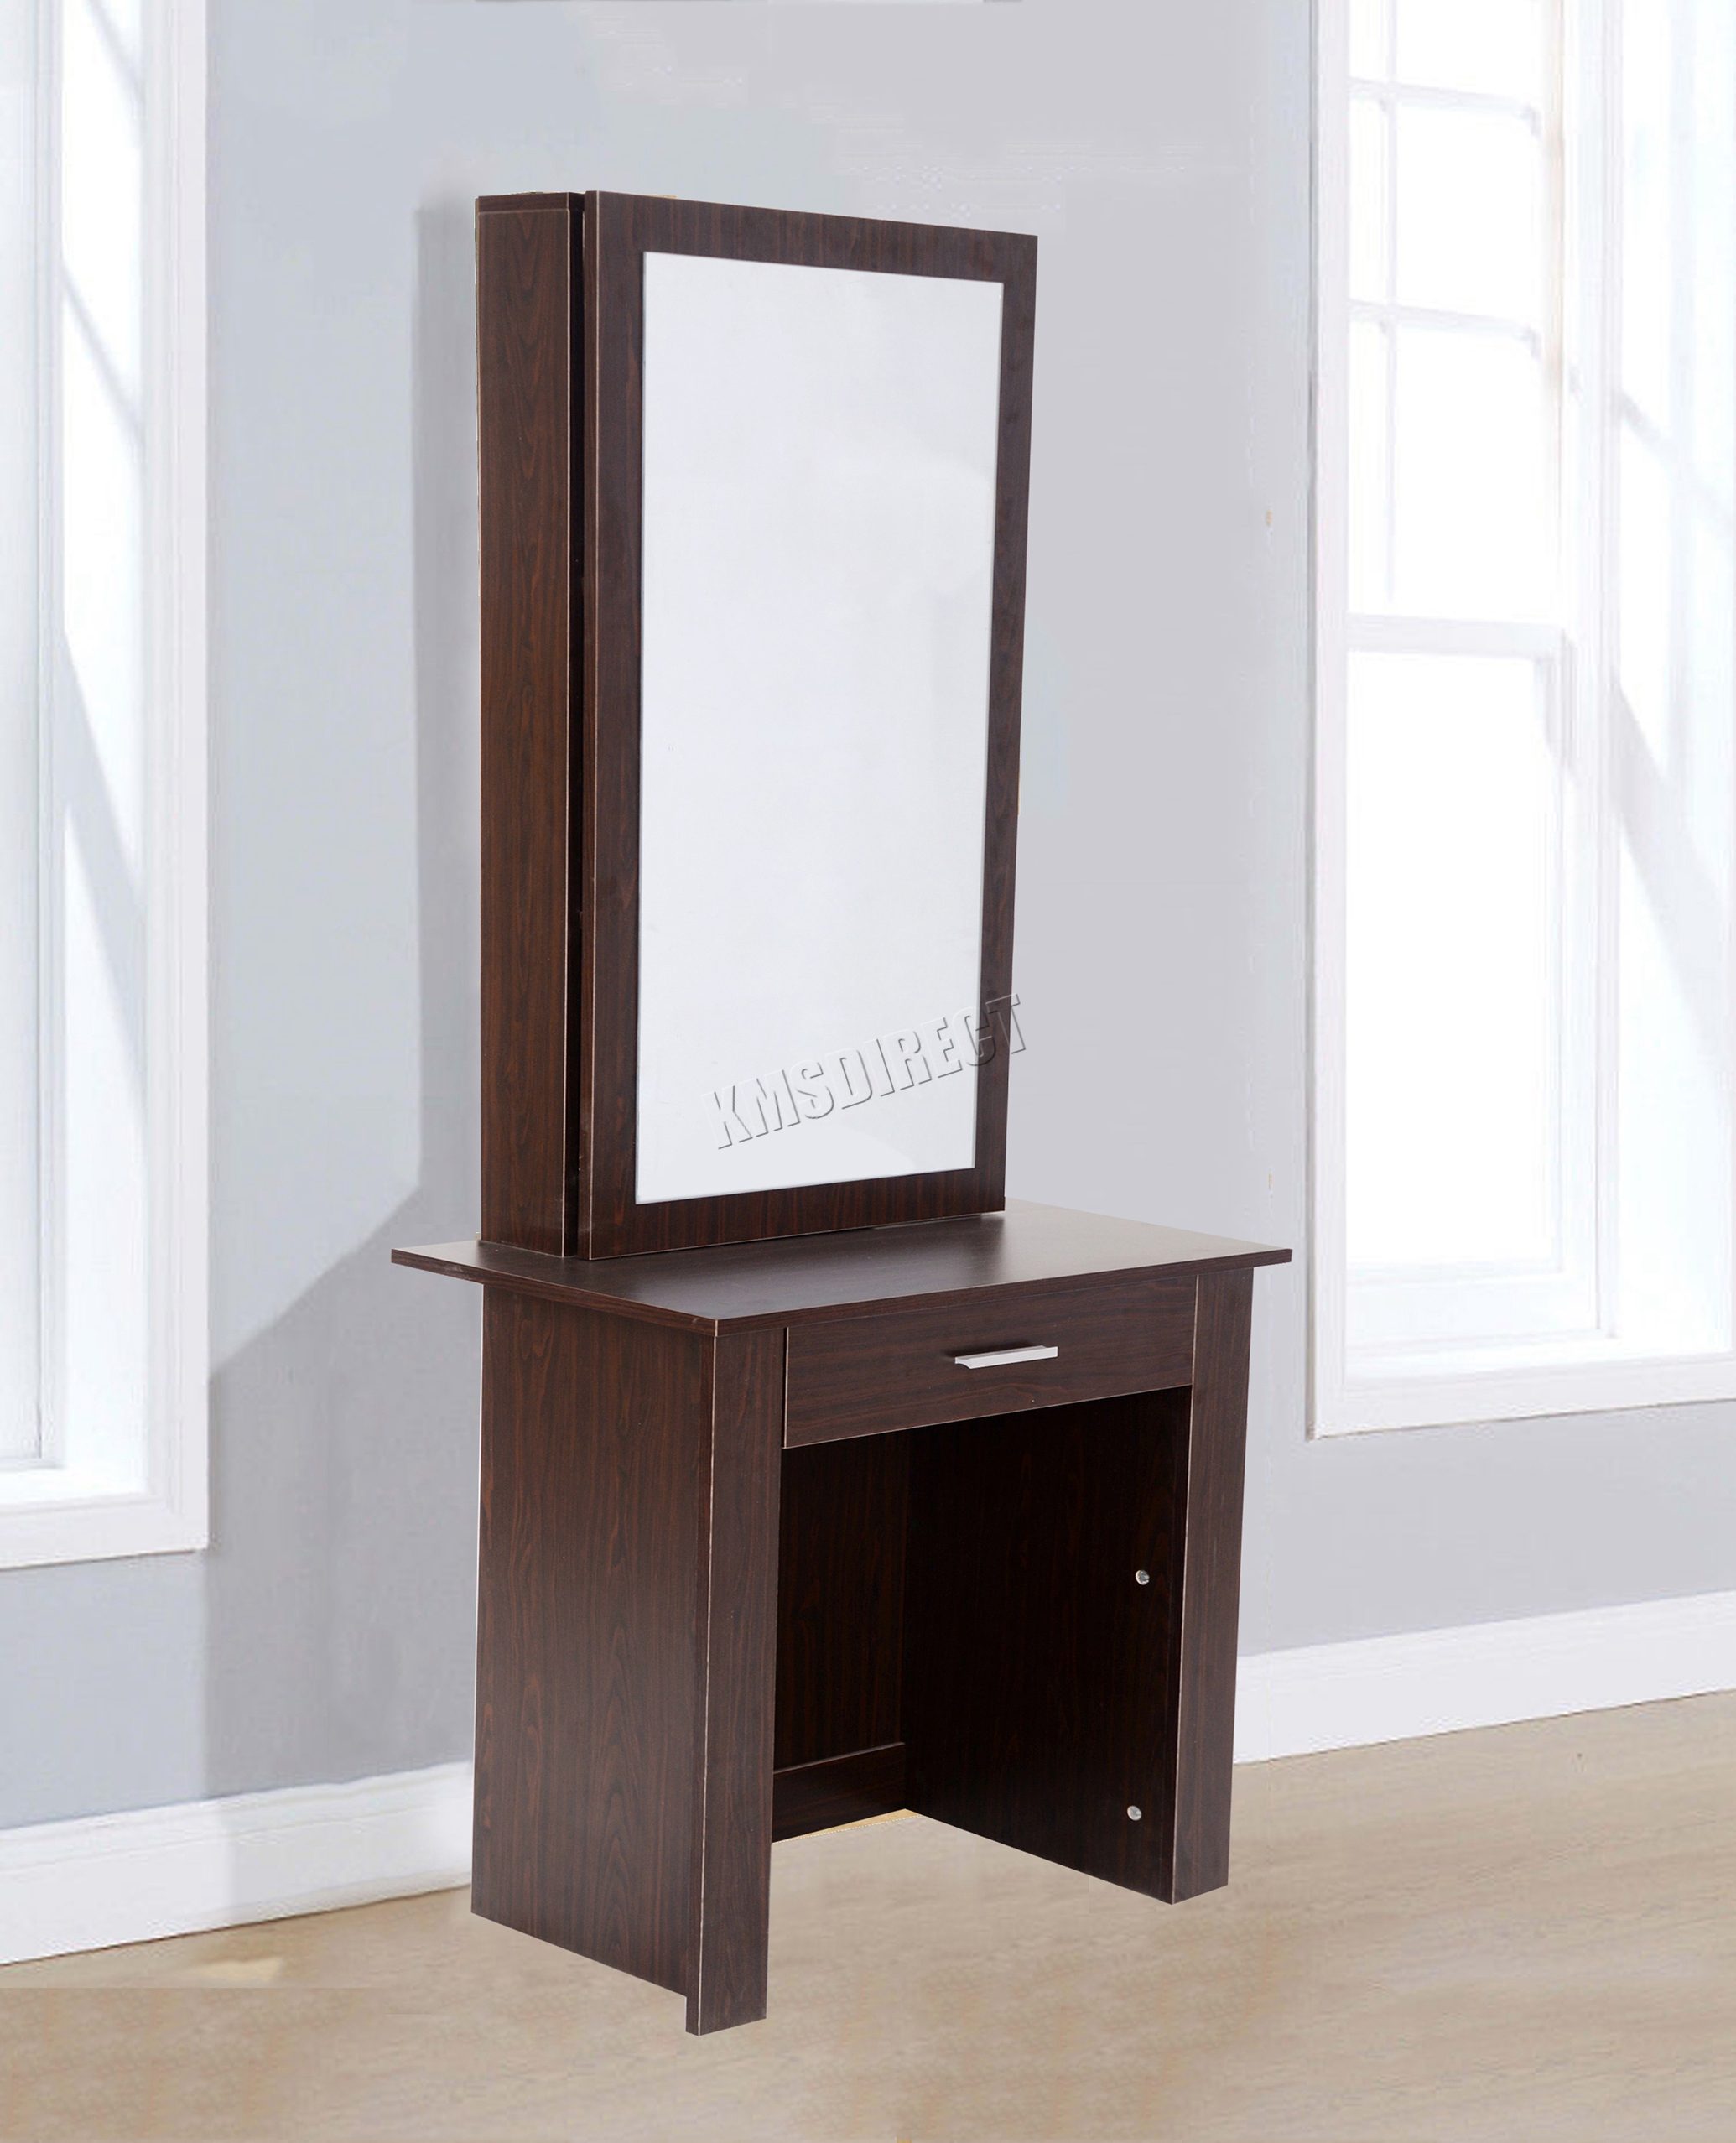 WestWood Wooden Makeup Jewelry Dressing Table With Sliding Mirror ... for Dressing Table Wooden Dressing Table Wooden Dresser  568zmd